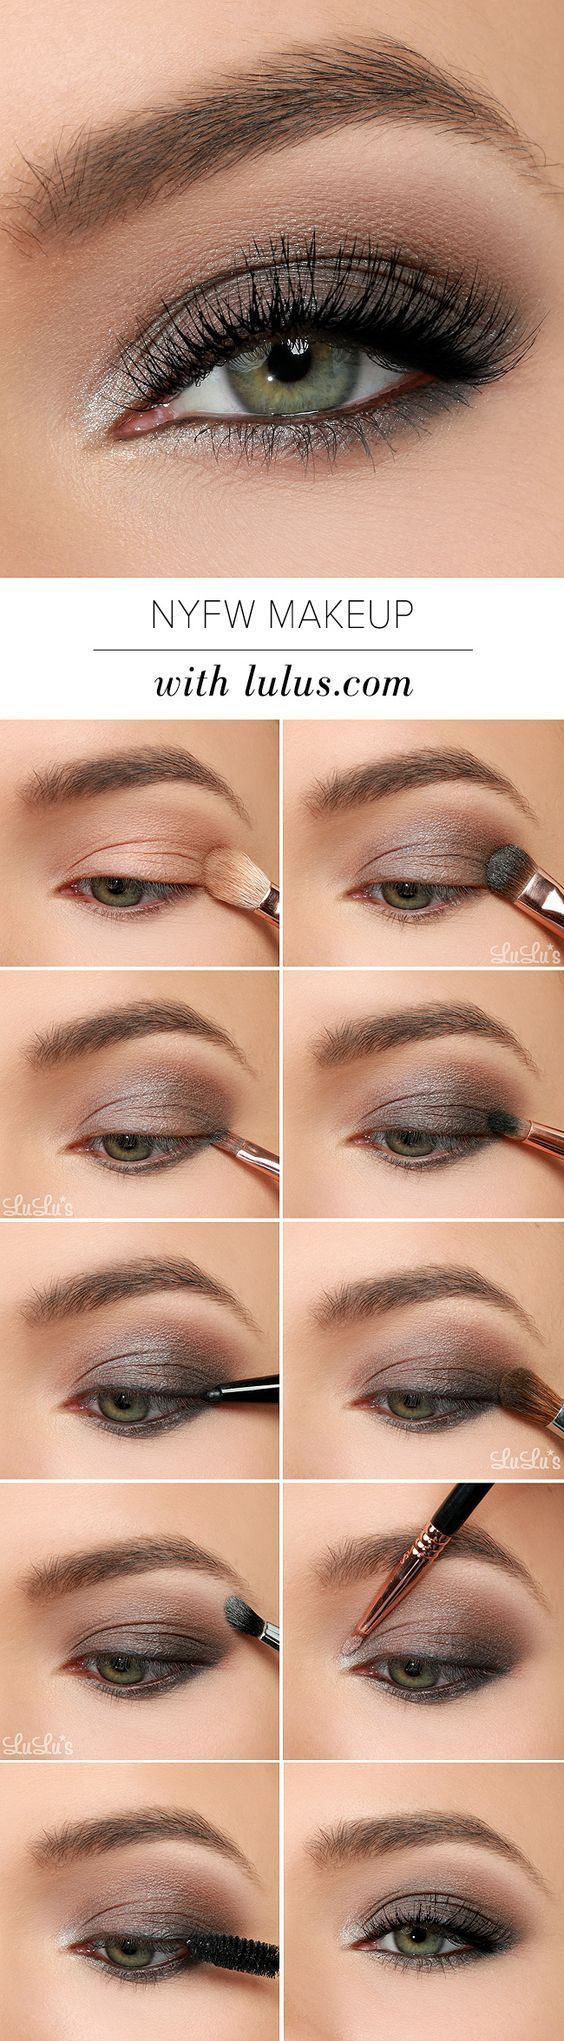 Makeup ideas 2017 2018 step by step smokey eye makeup tutorials step by step smokey eye makeup tutorials baditri Choice Image